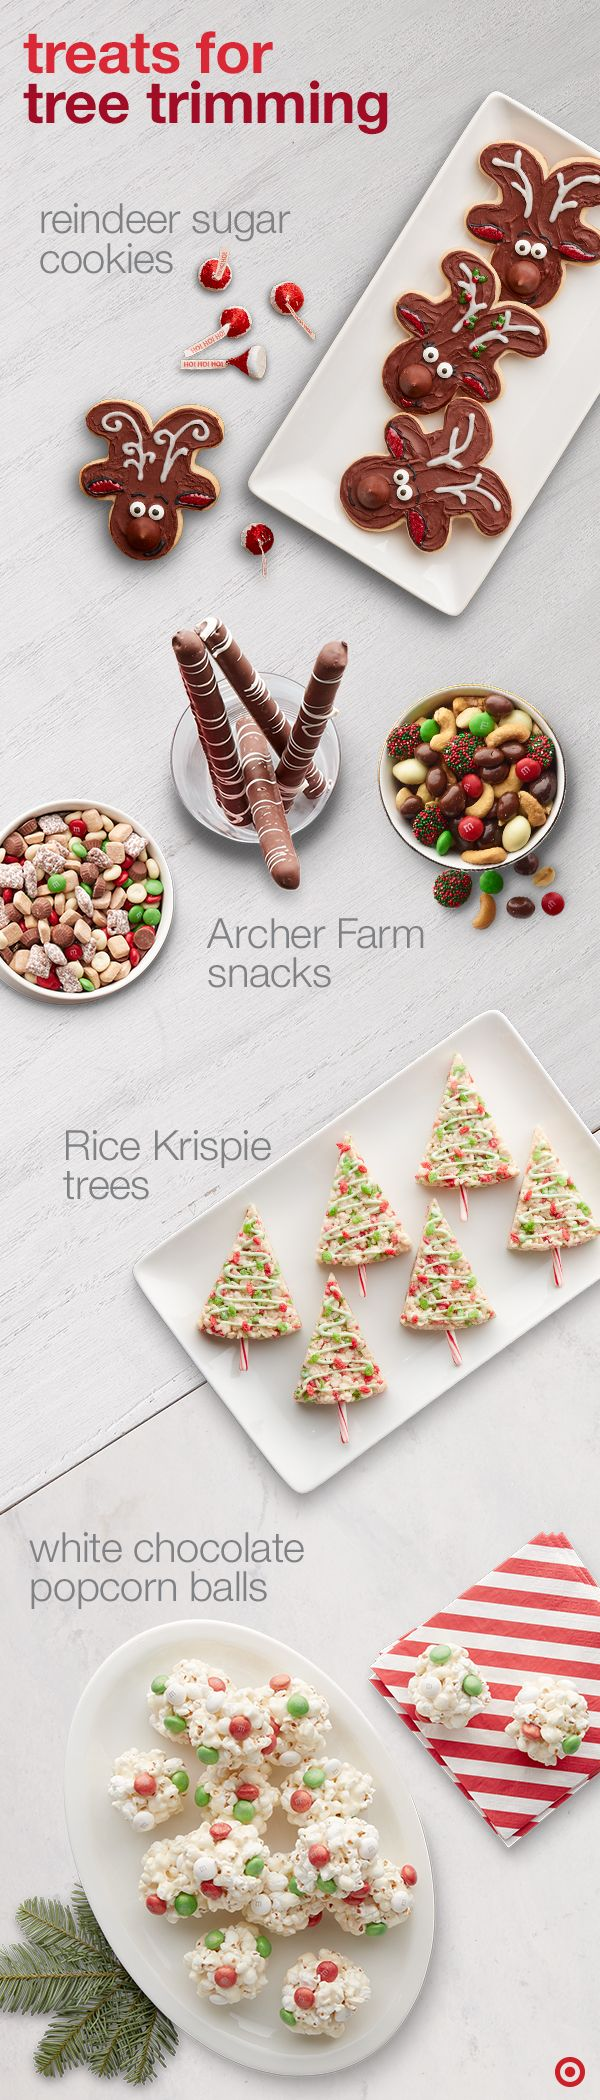 Don't decorate on an empty stomach. Take your tree trimming tradition and make it extra tasty! With sweet treats like White Chocolate Popcorn Balls, Rice Krispie Trees and Reindeer Sugar Cookies you'll get the whole family full on the holiday spirit.